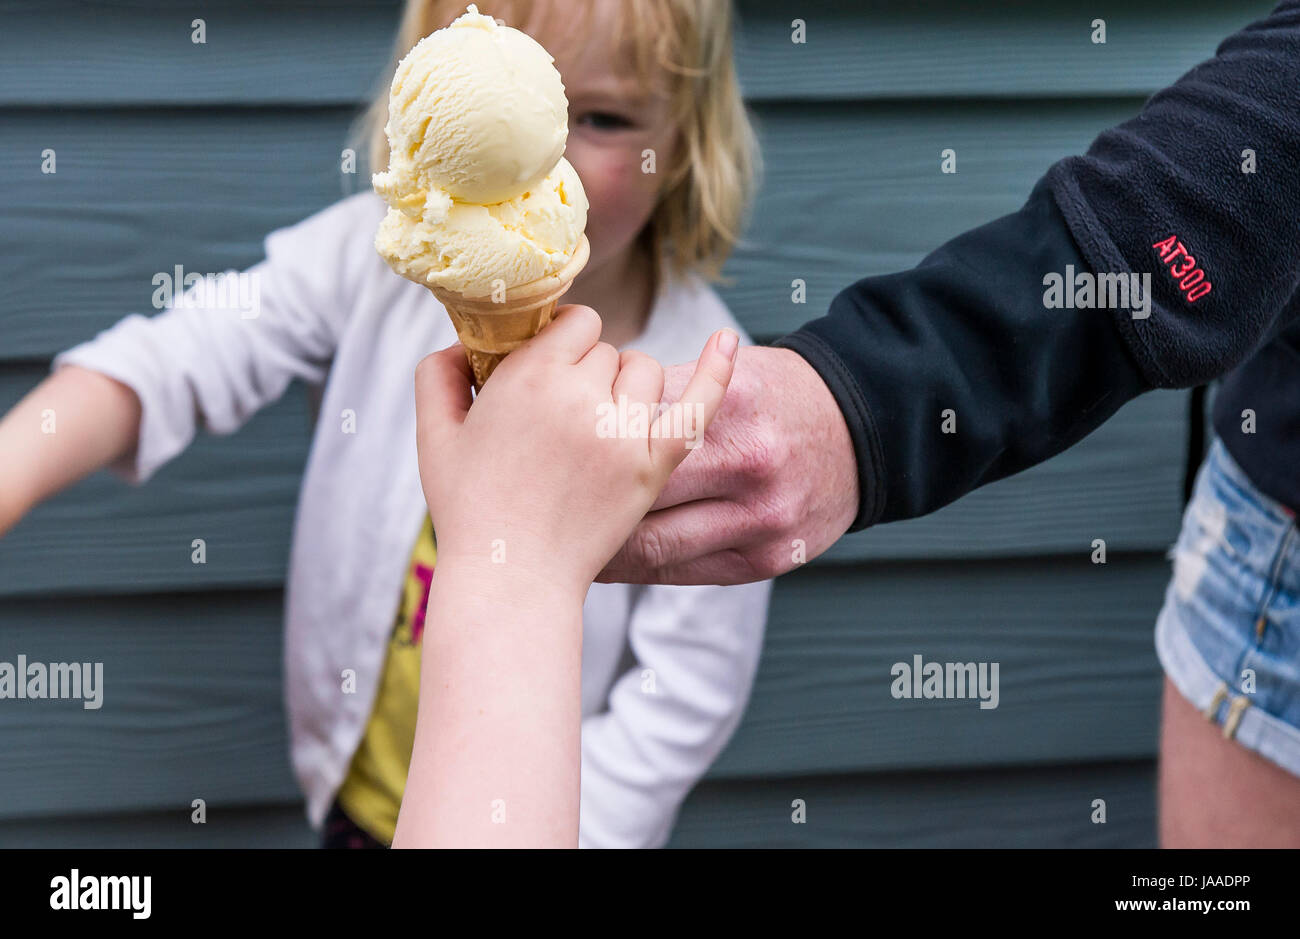 An adult giving an ice cream cone to a child. - Stock Image